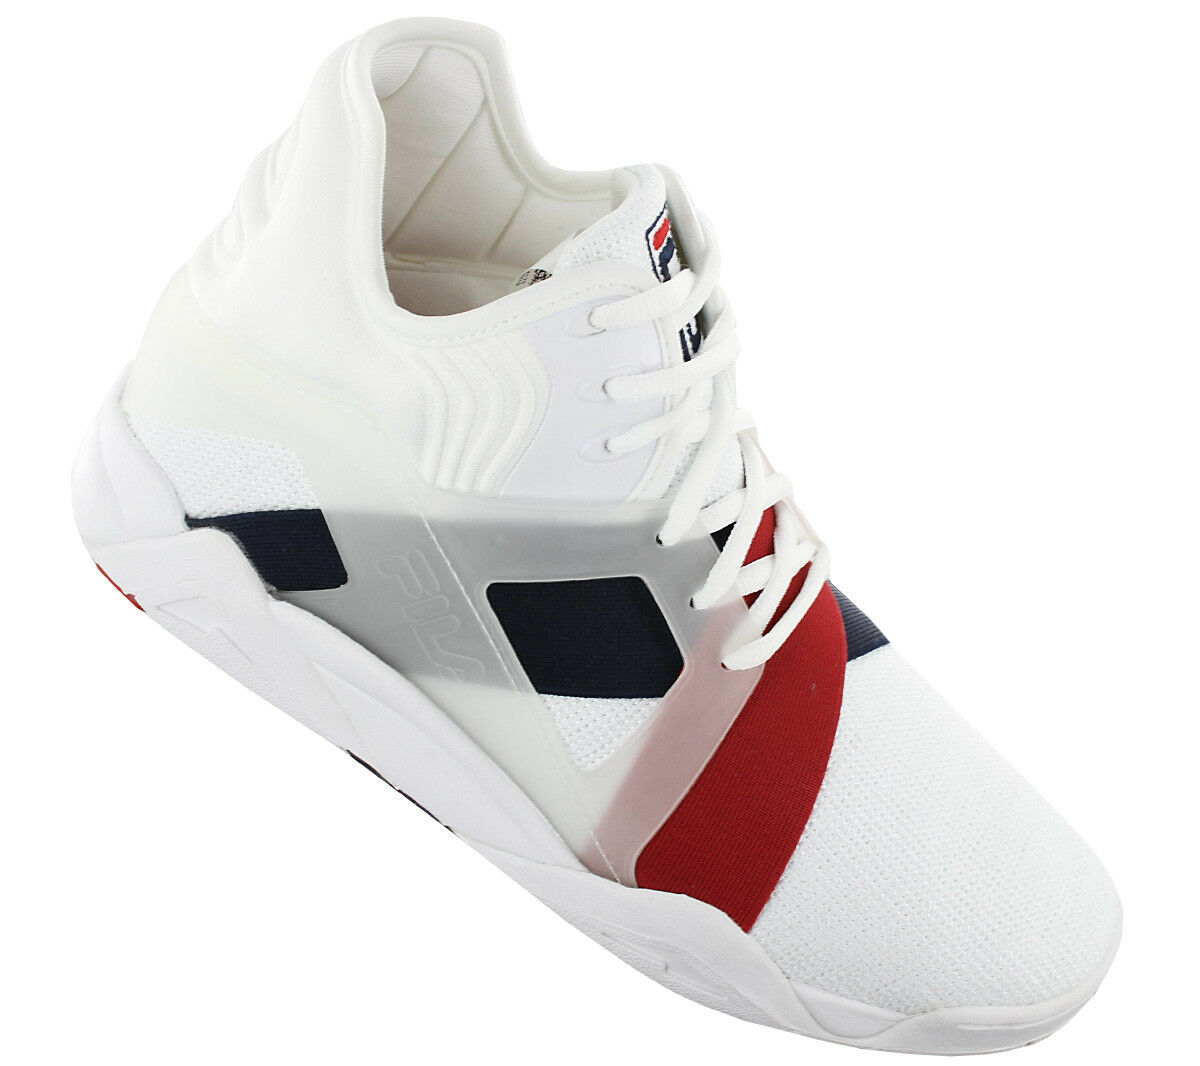 NEW Fila The Cage 17 1BM00026-125 Men''s shoes Trainers Sneakers SALE